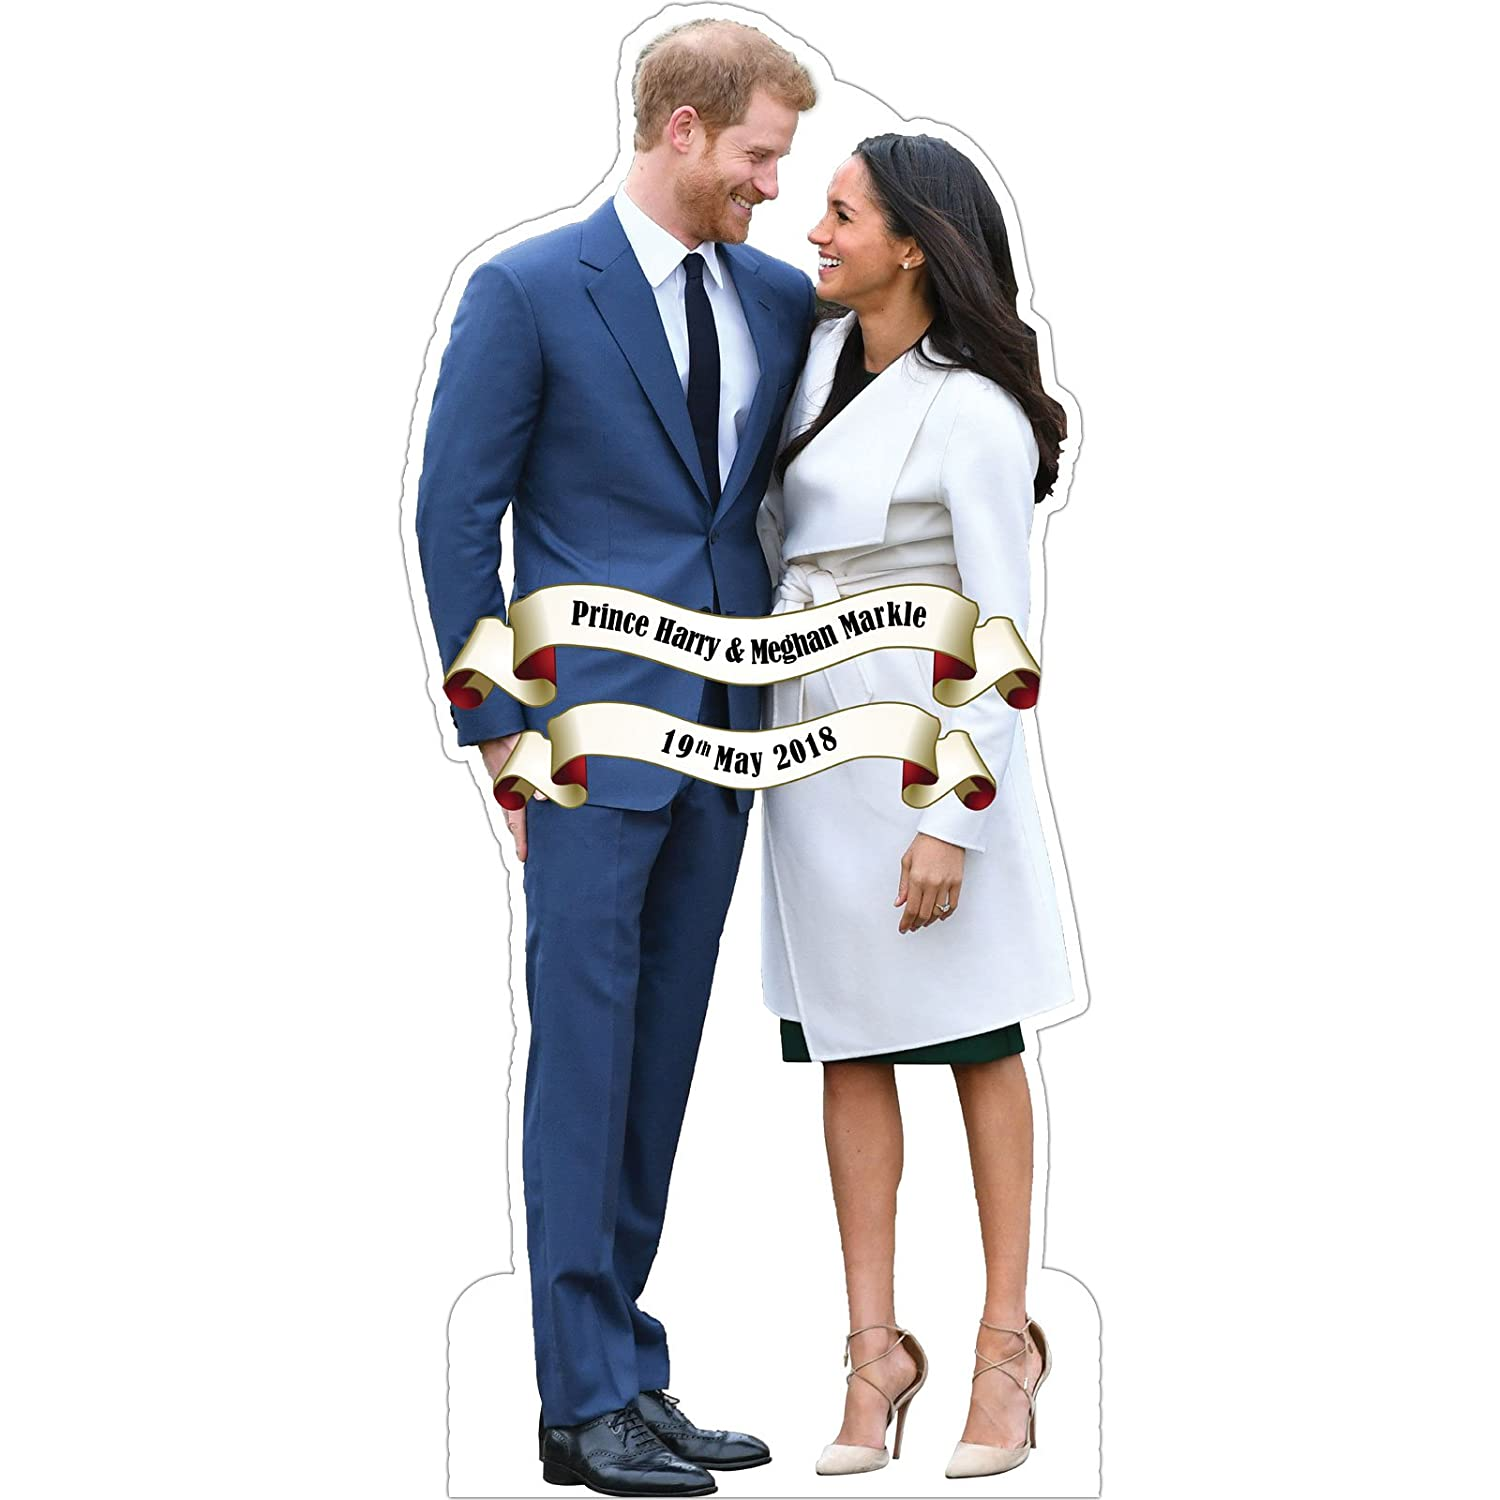 Royal Wedding Prince Harry And Meghan Markle Life Size Commemorative Cardboard Cutout Party Showroom